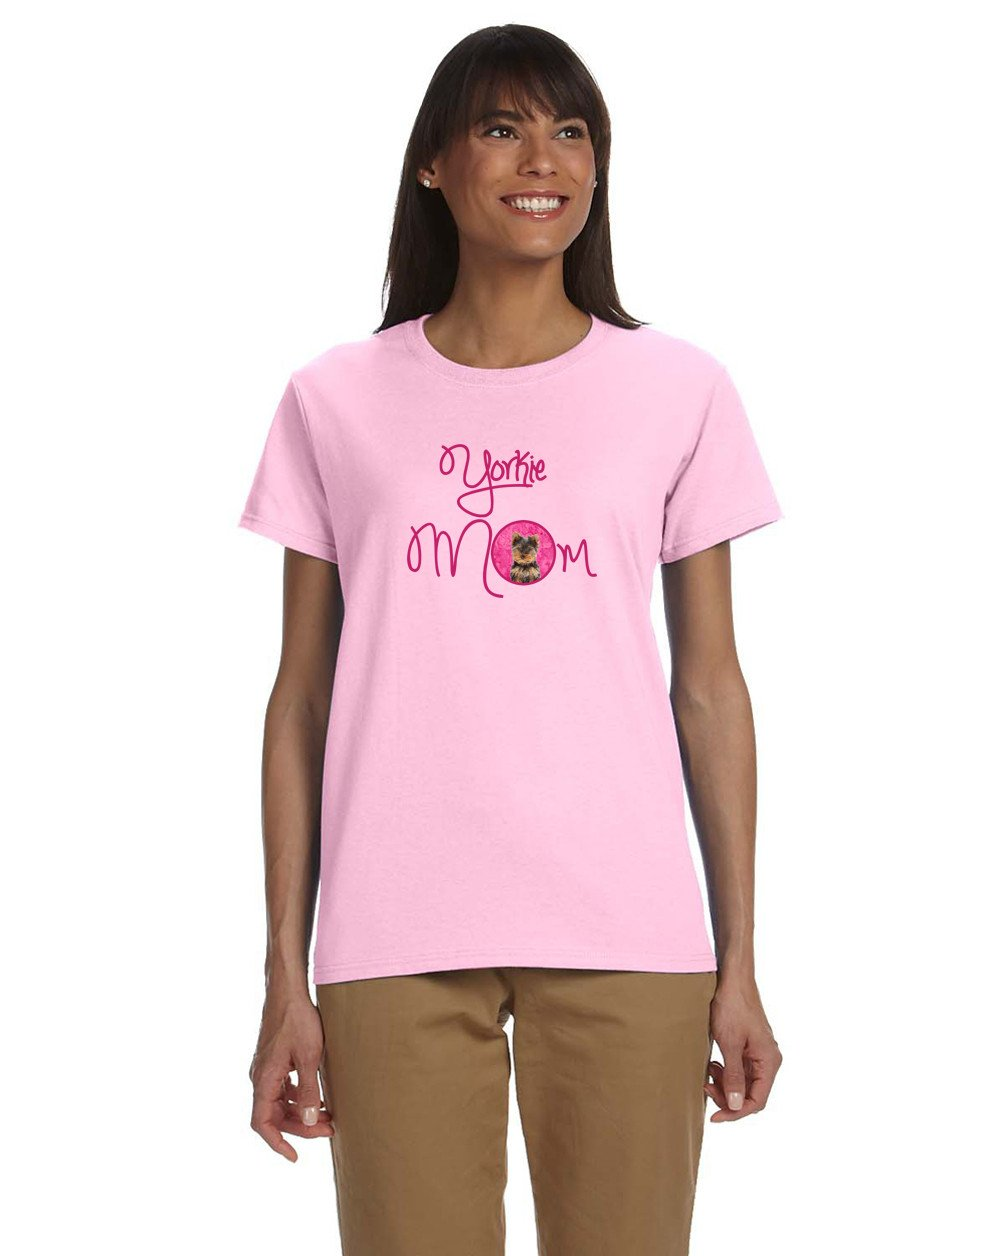 Pink Yorkie Puppy / Yorkshire Terrier Mom T-shirt Ladies Cut Short Sleeve XL by Caroline's Treasures